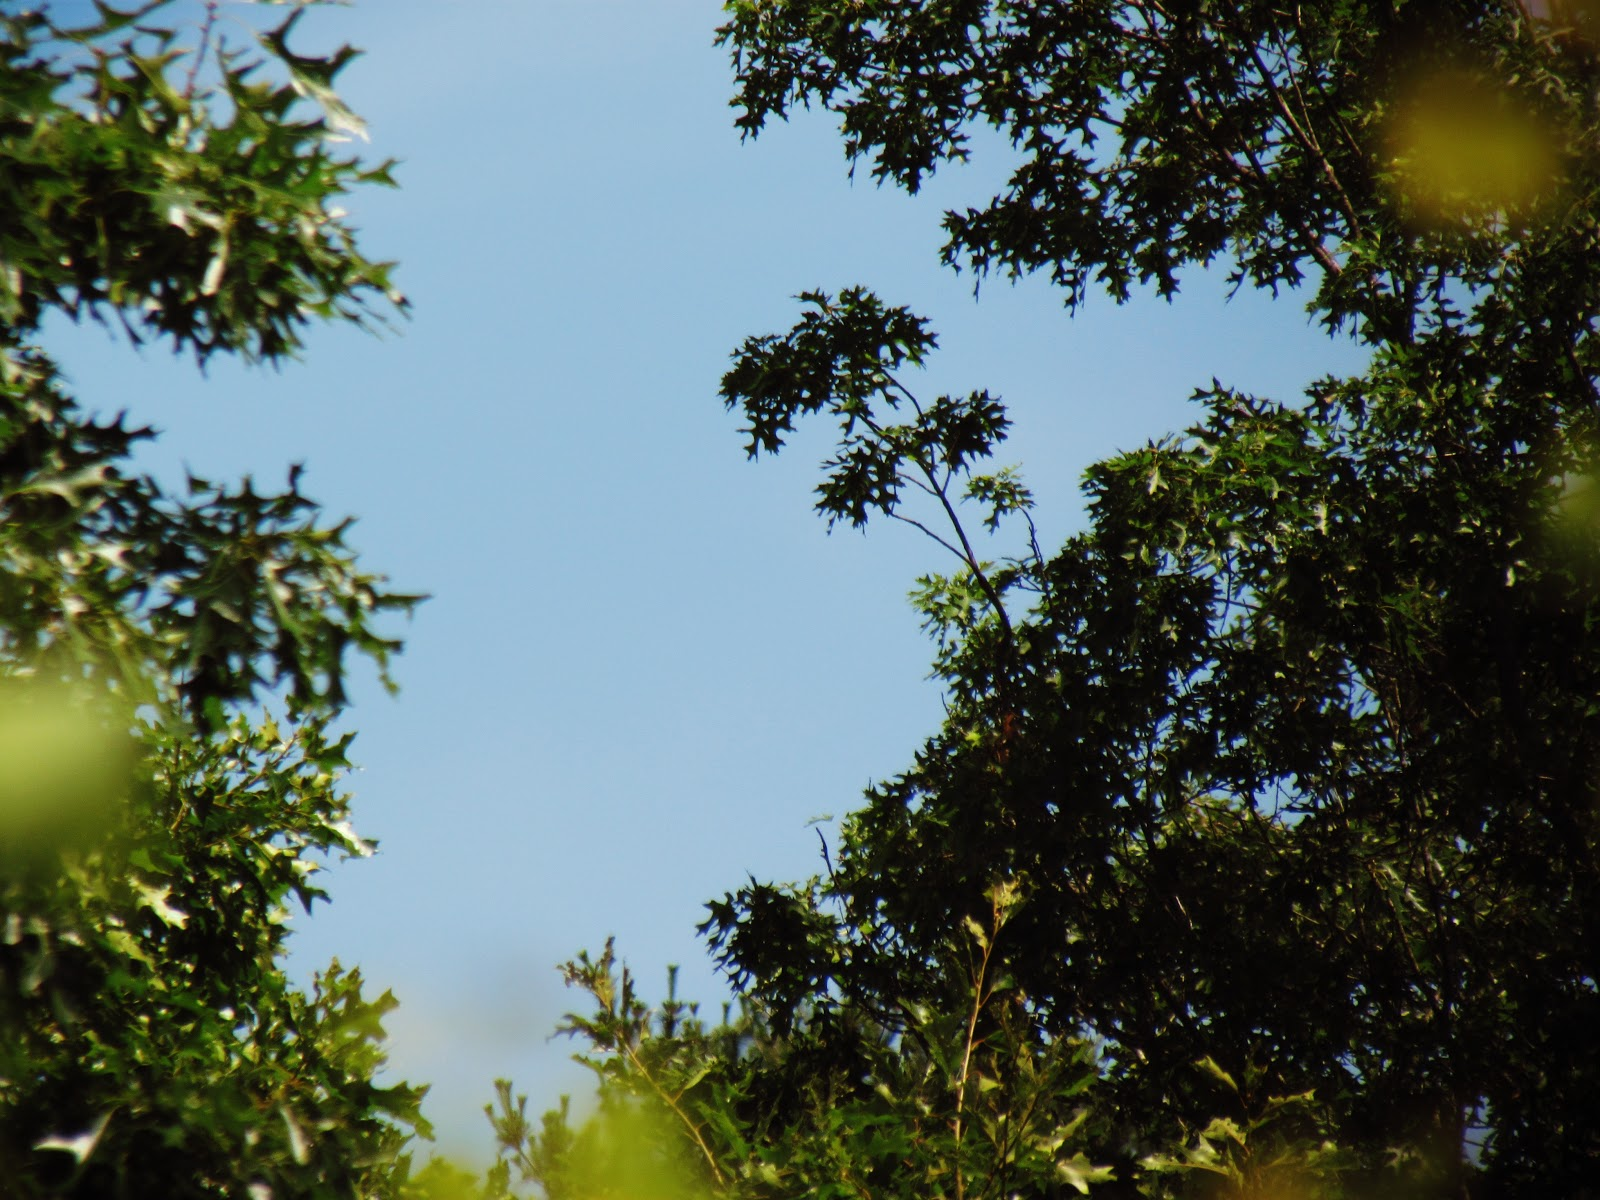 A group of trees in an emerald green forest reaching for the blue skies and gathering courage